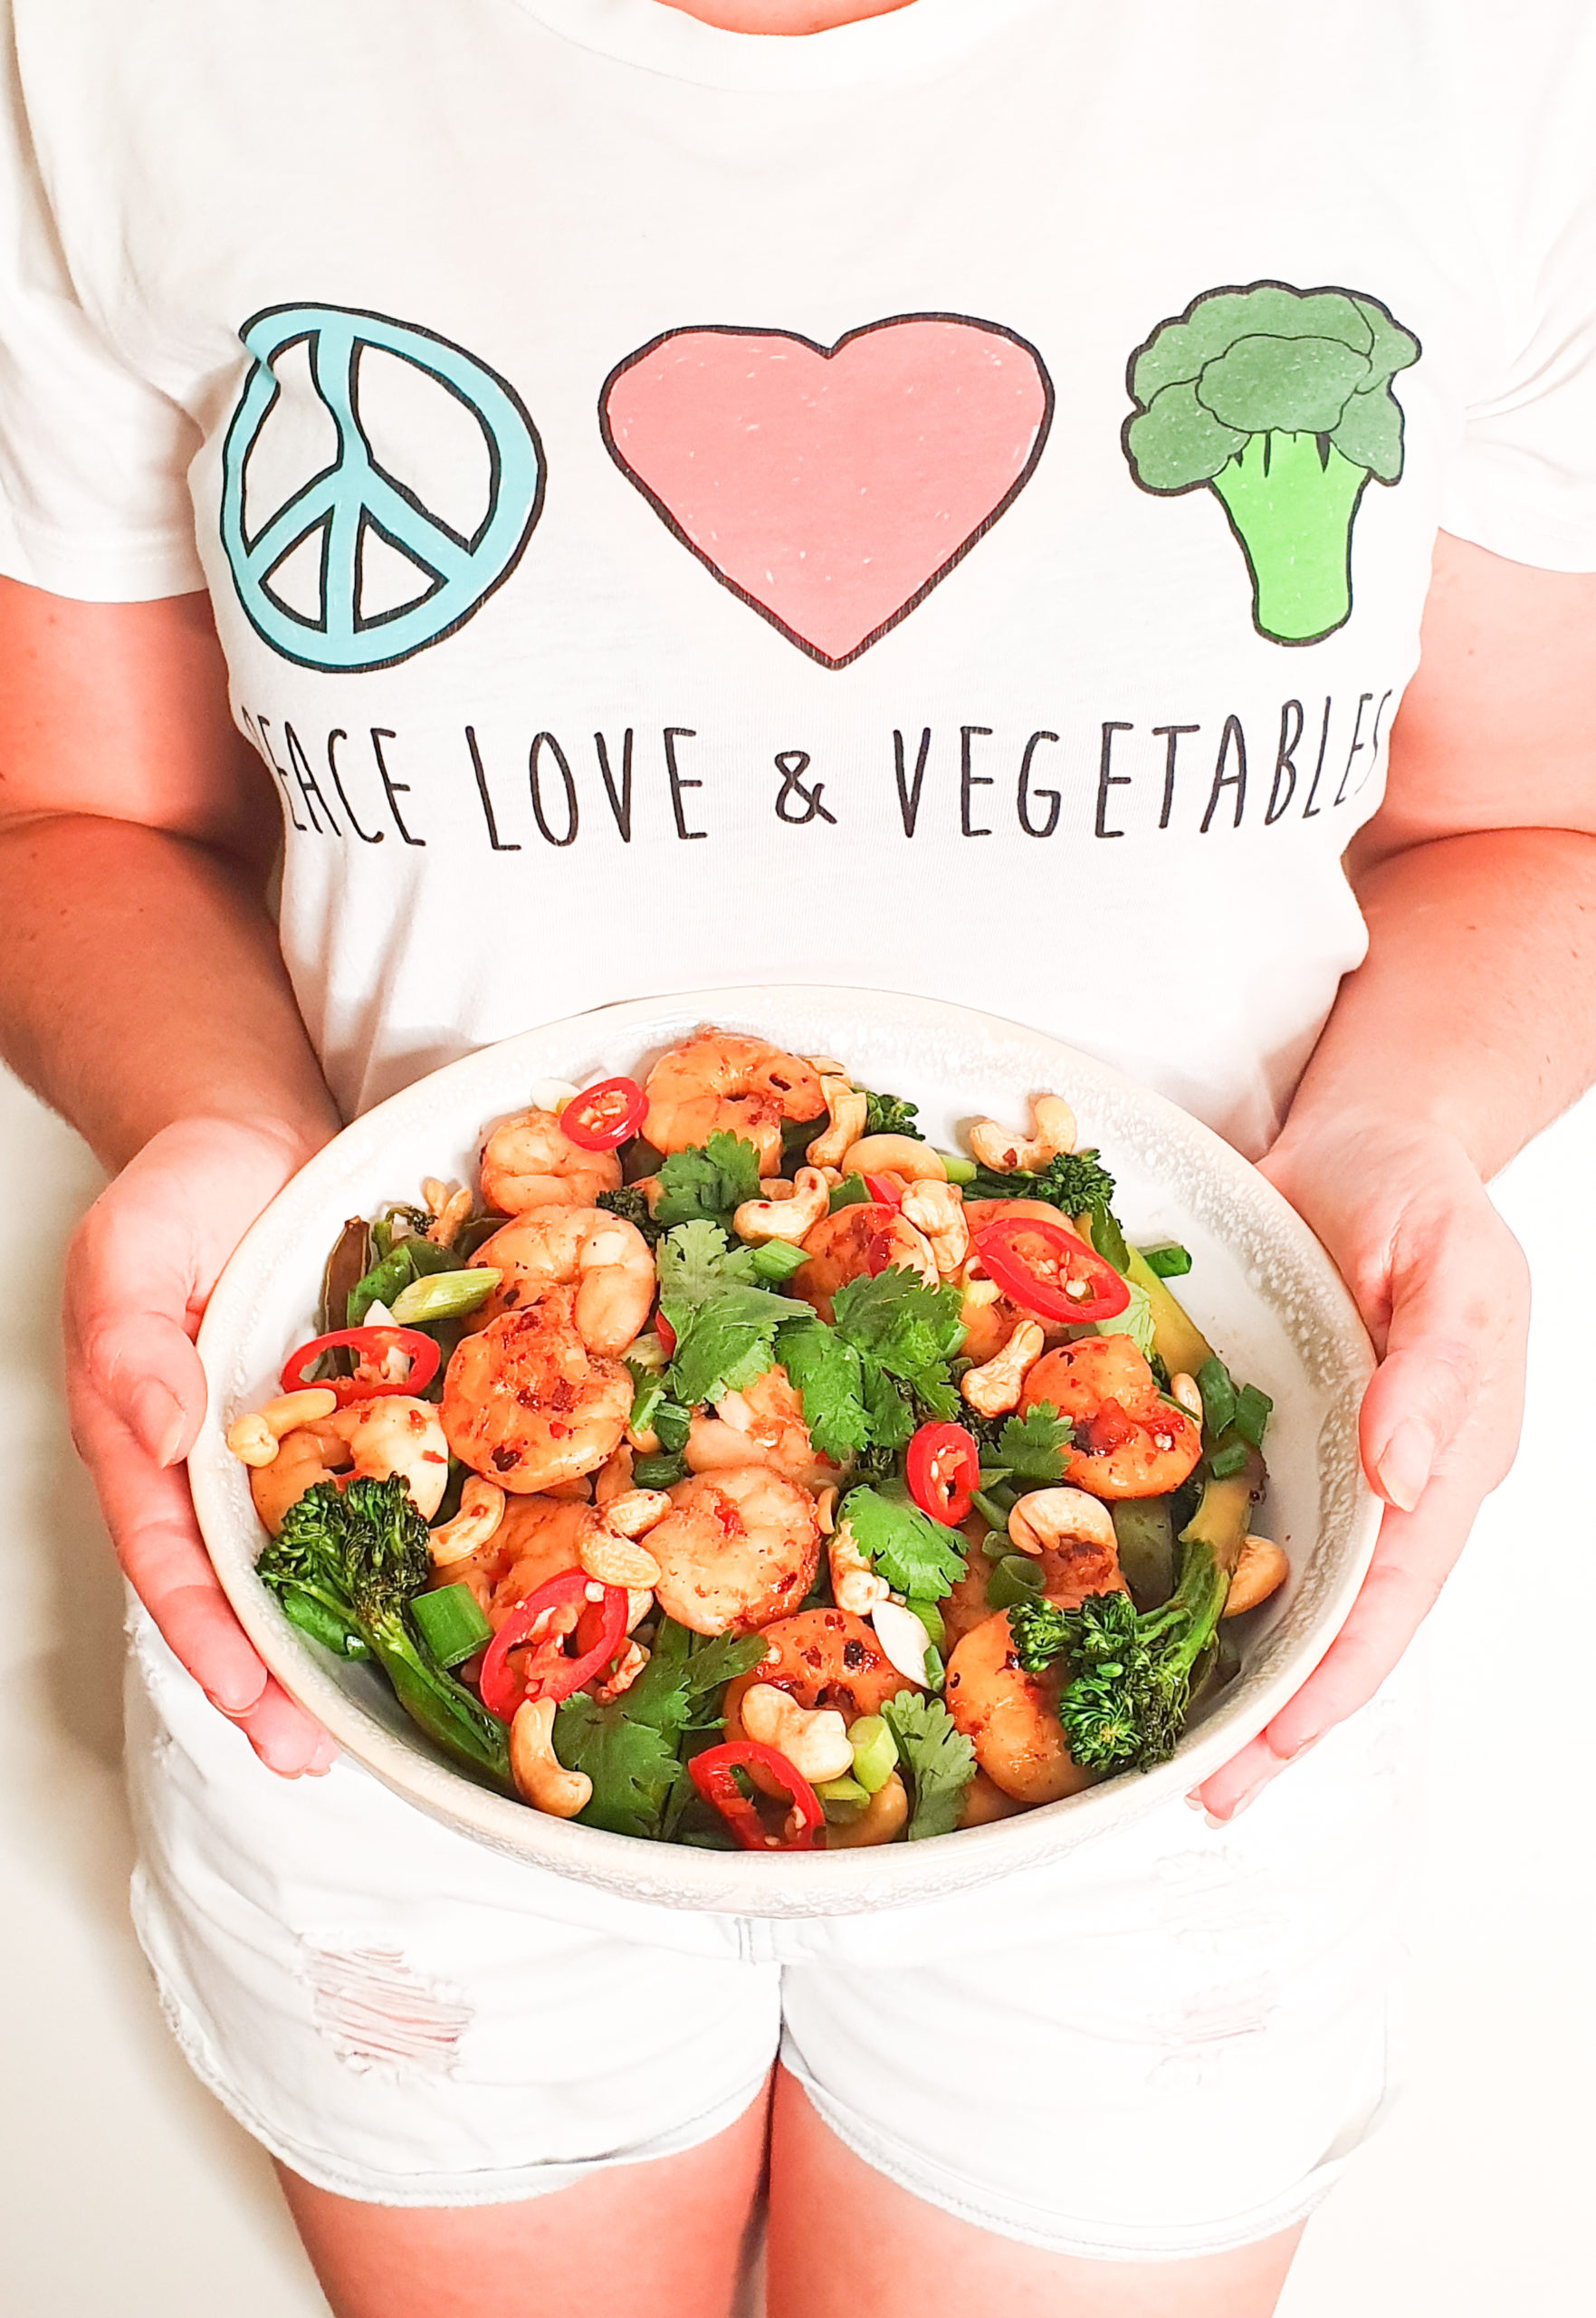 A picture of a person holding a bowl of cooked prawns and broccoli, a prawn and broccoli stir fry